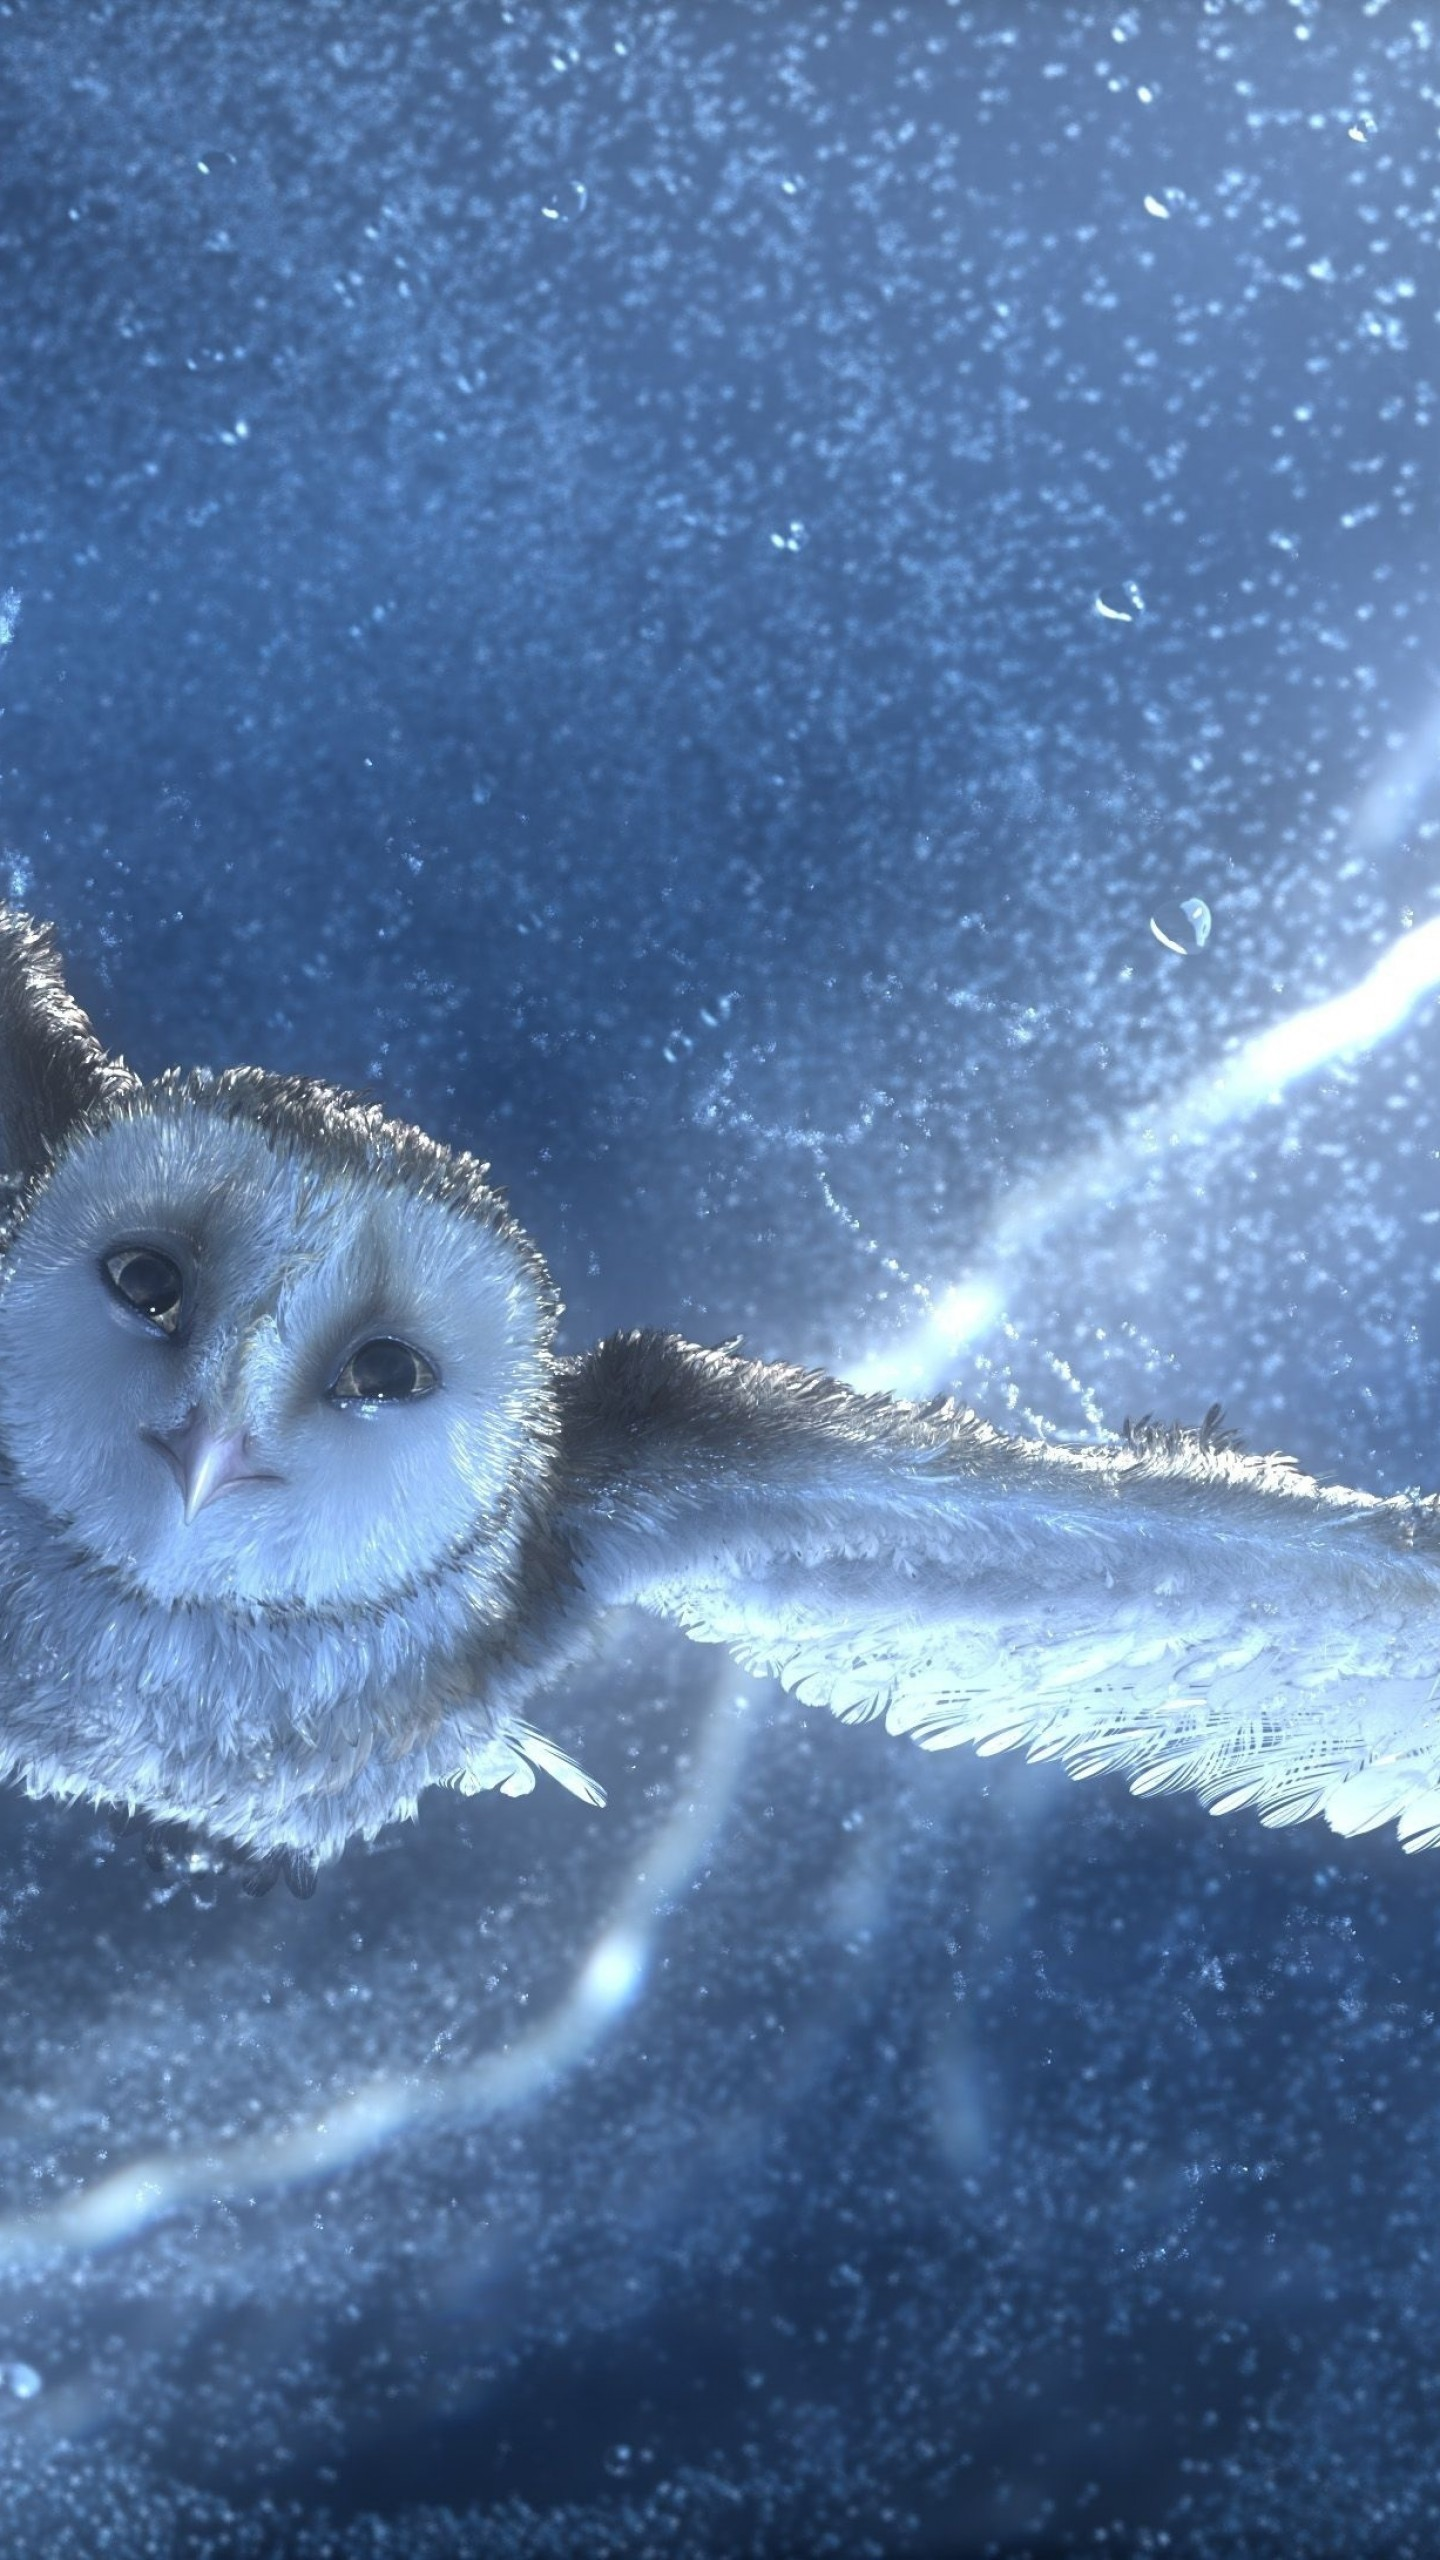 Hd Life Wallpapers Wallpaper Owl Flying Snow Storm Lightning Blue Bird